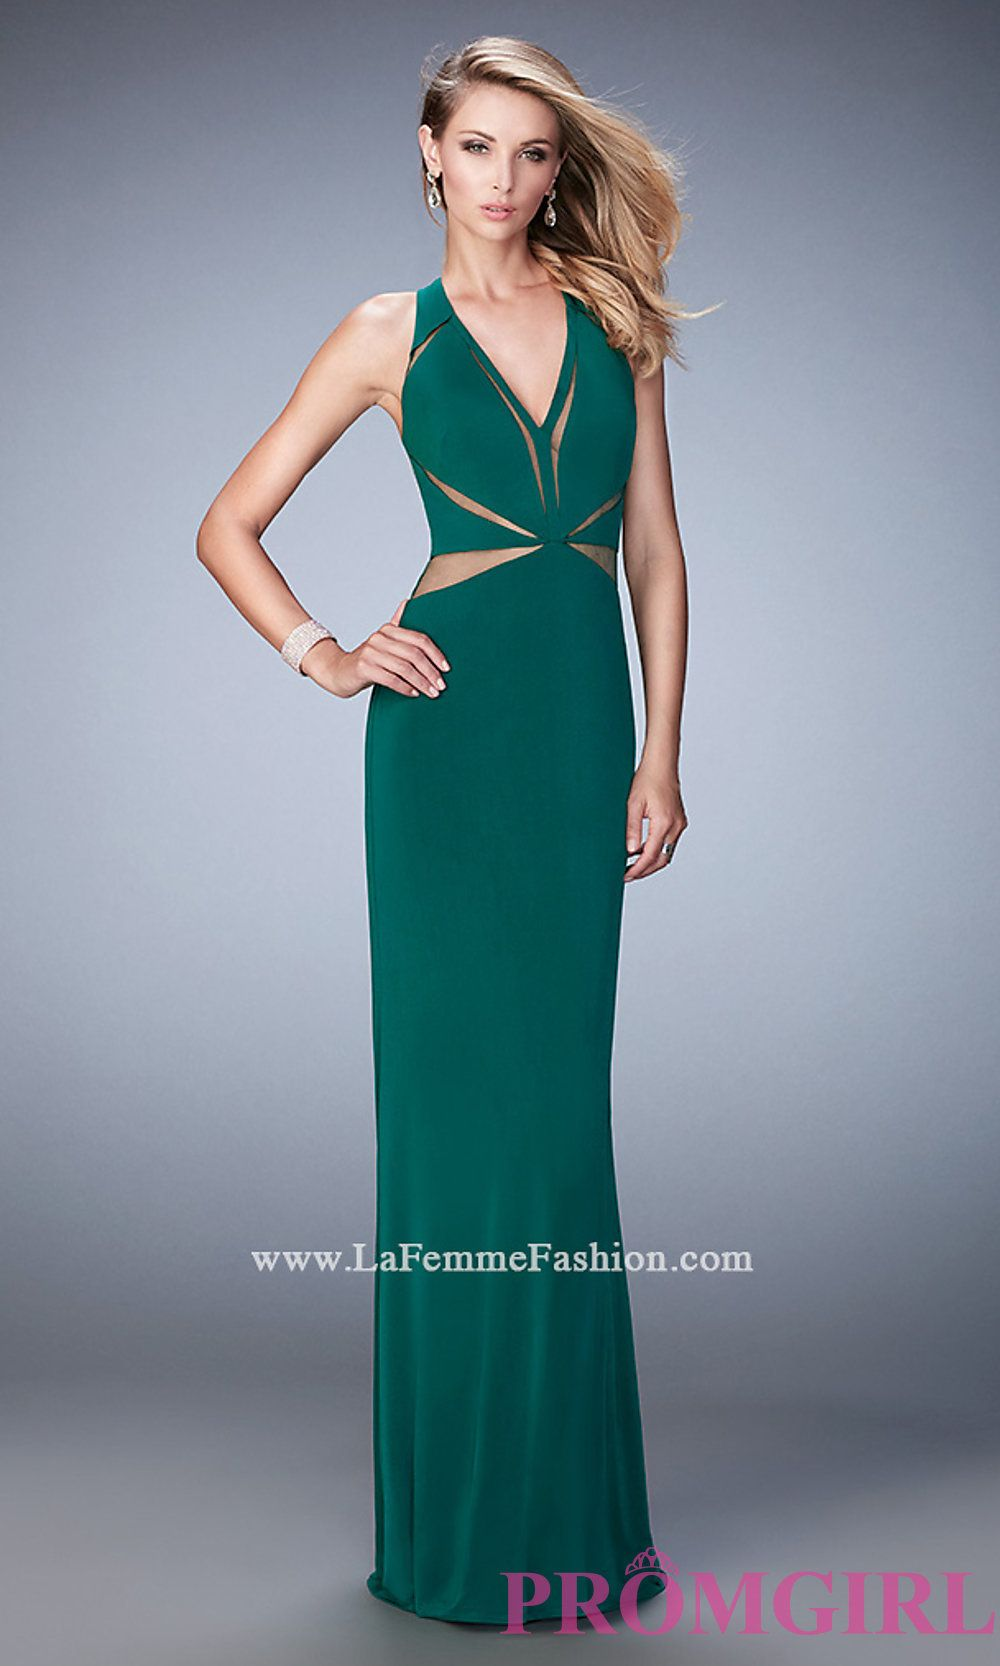 Sheer Cut Out V-Neck Long La Femme Prom Dress Style: LF-22276 | Prom ...